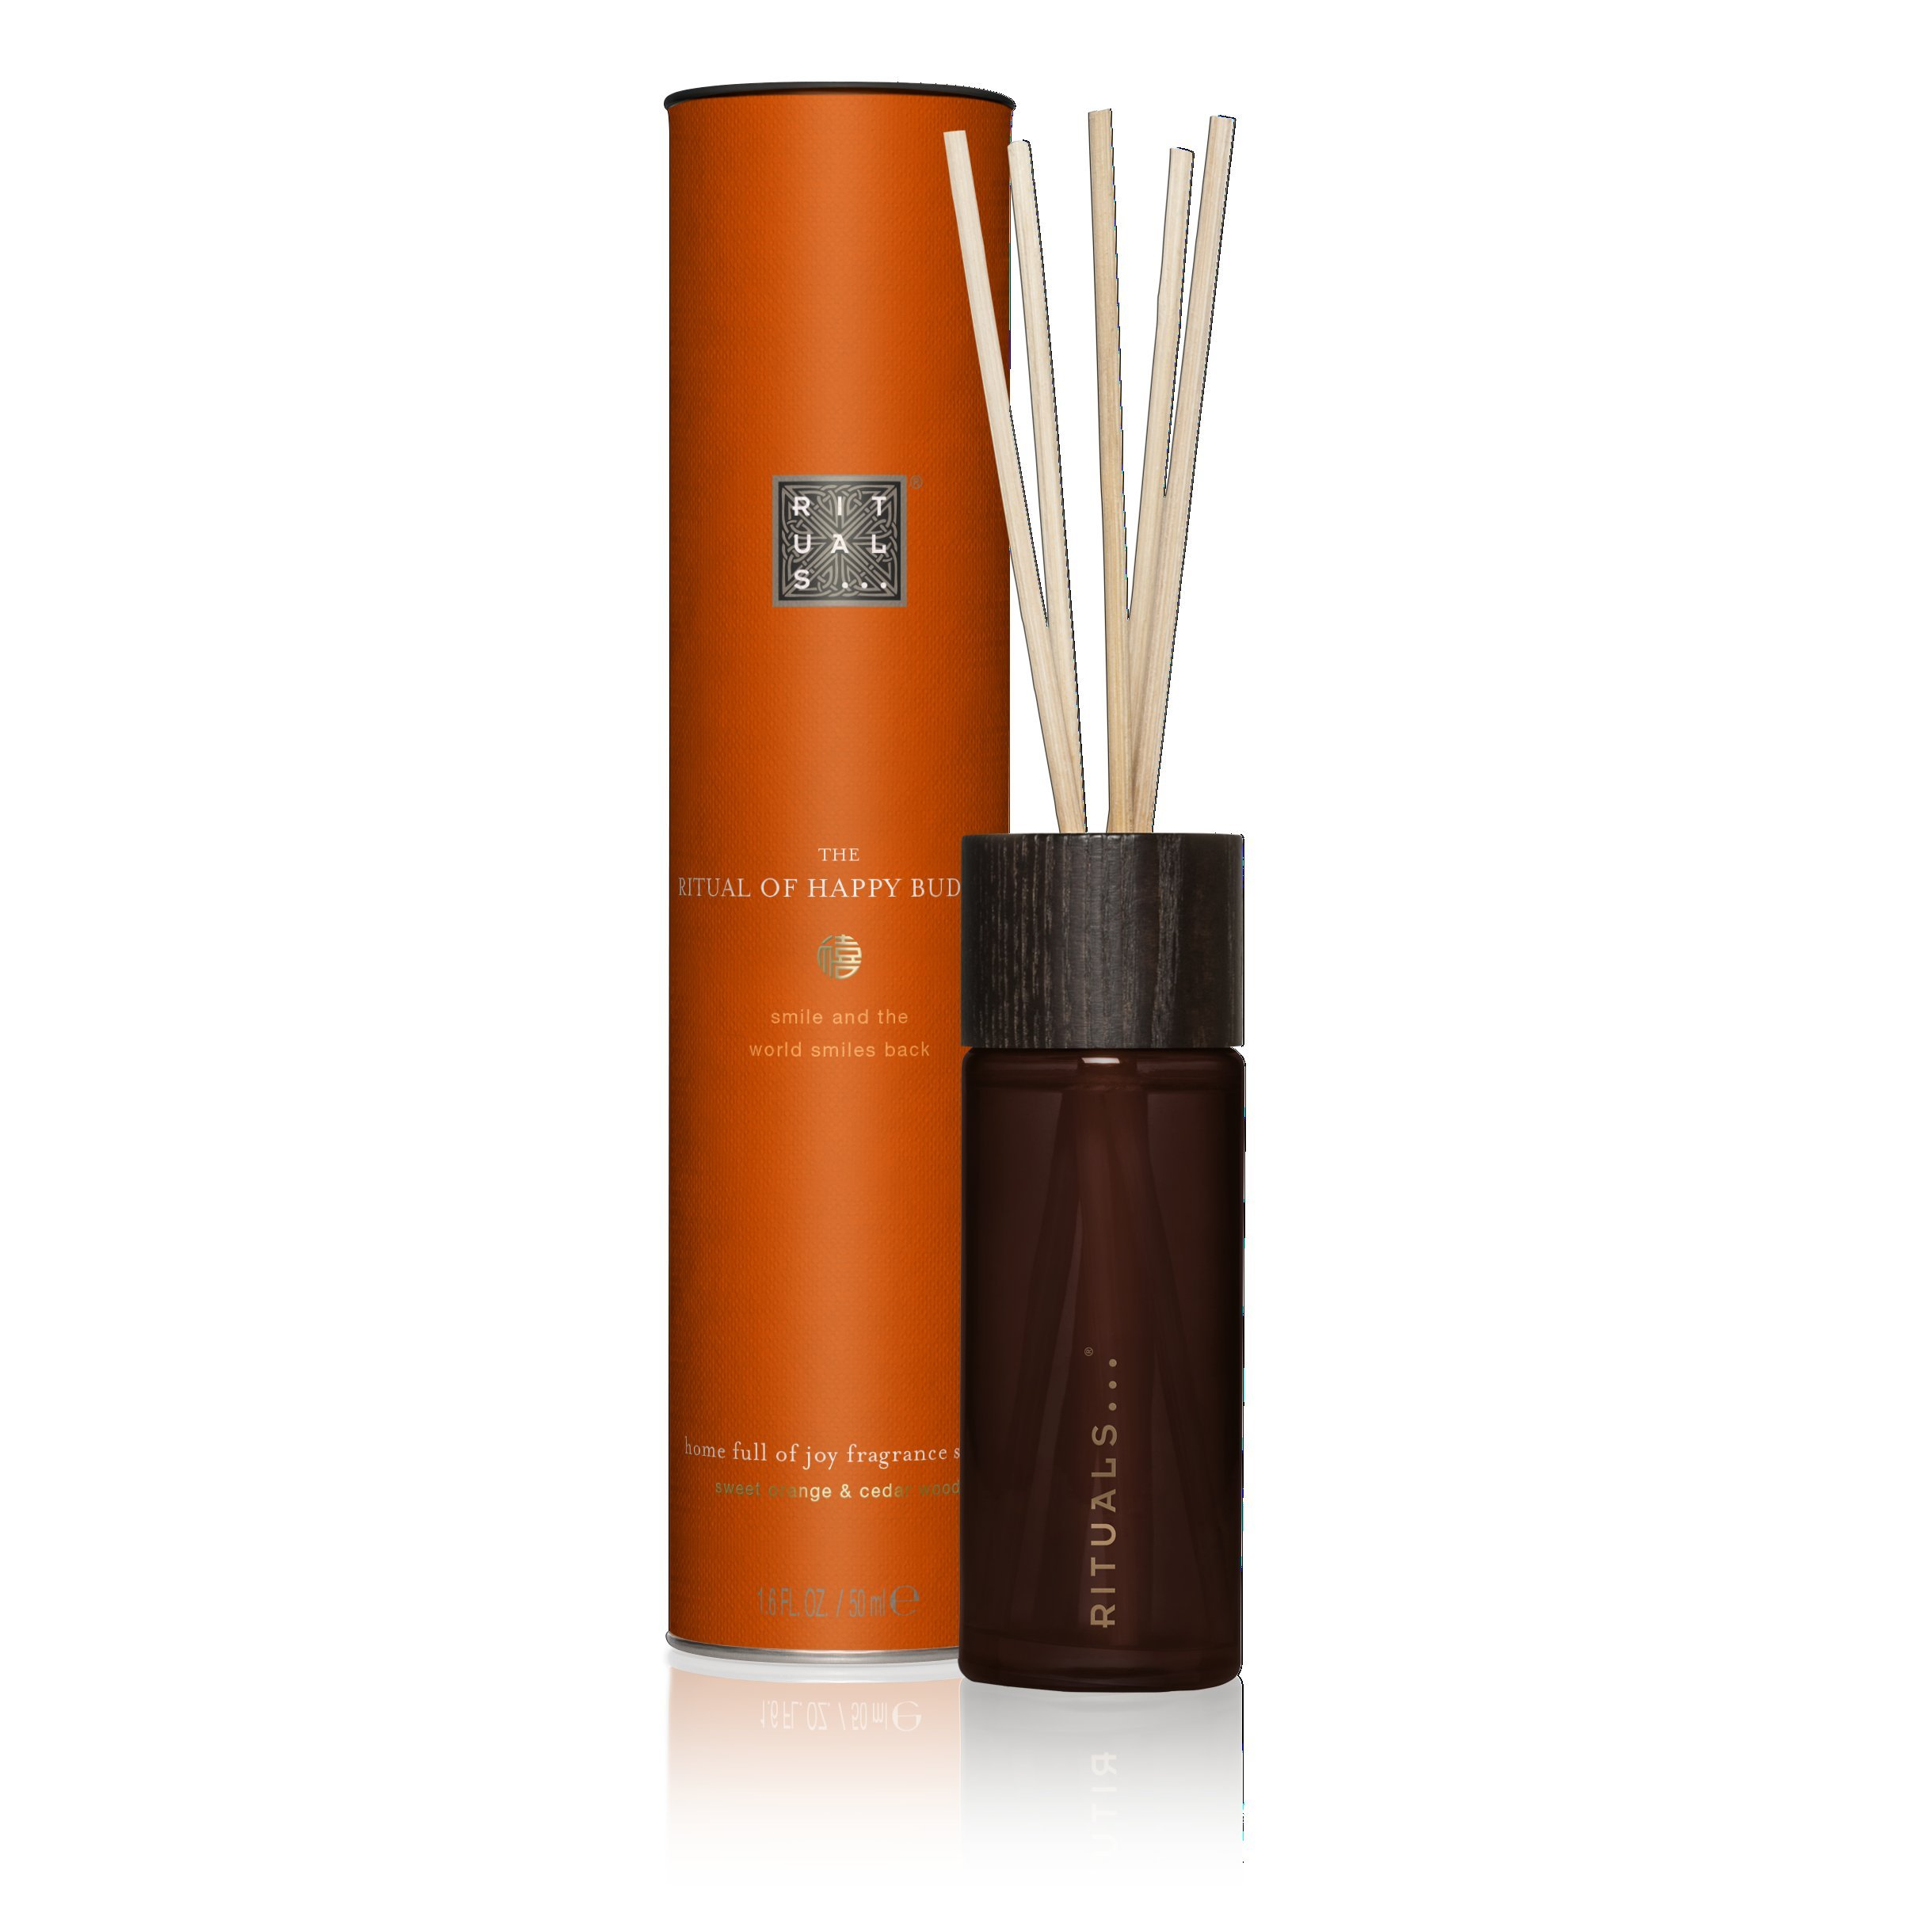 Rituals The Ritual of Happy Buddha Mini Fragrance Sticks, 1.69 fl. oz.